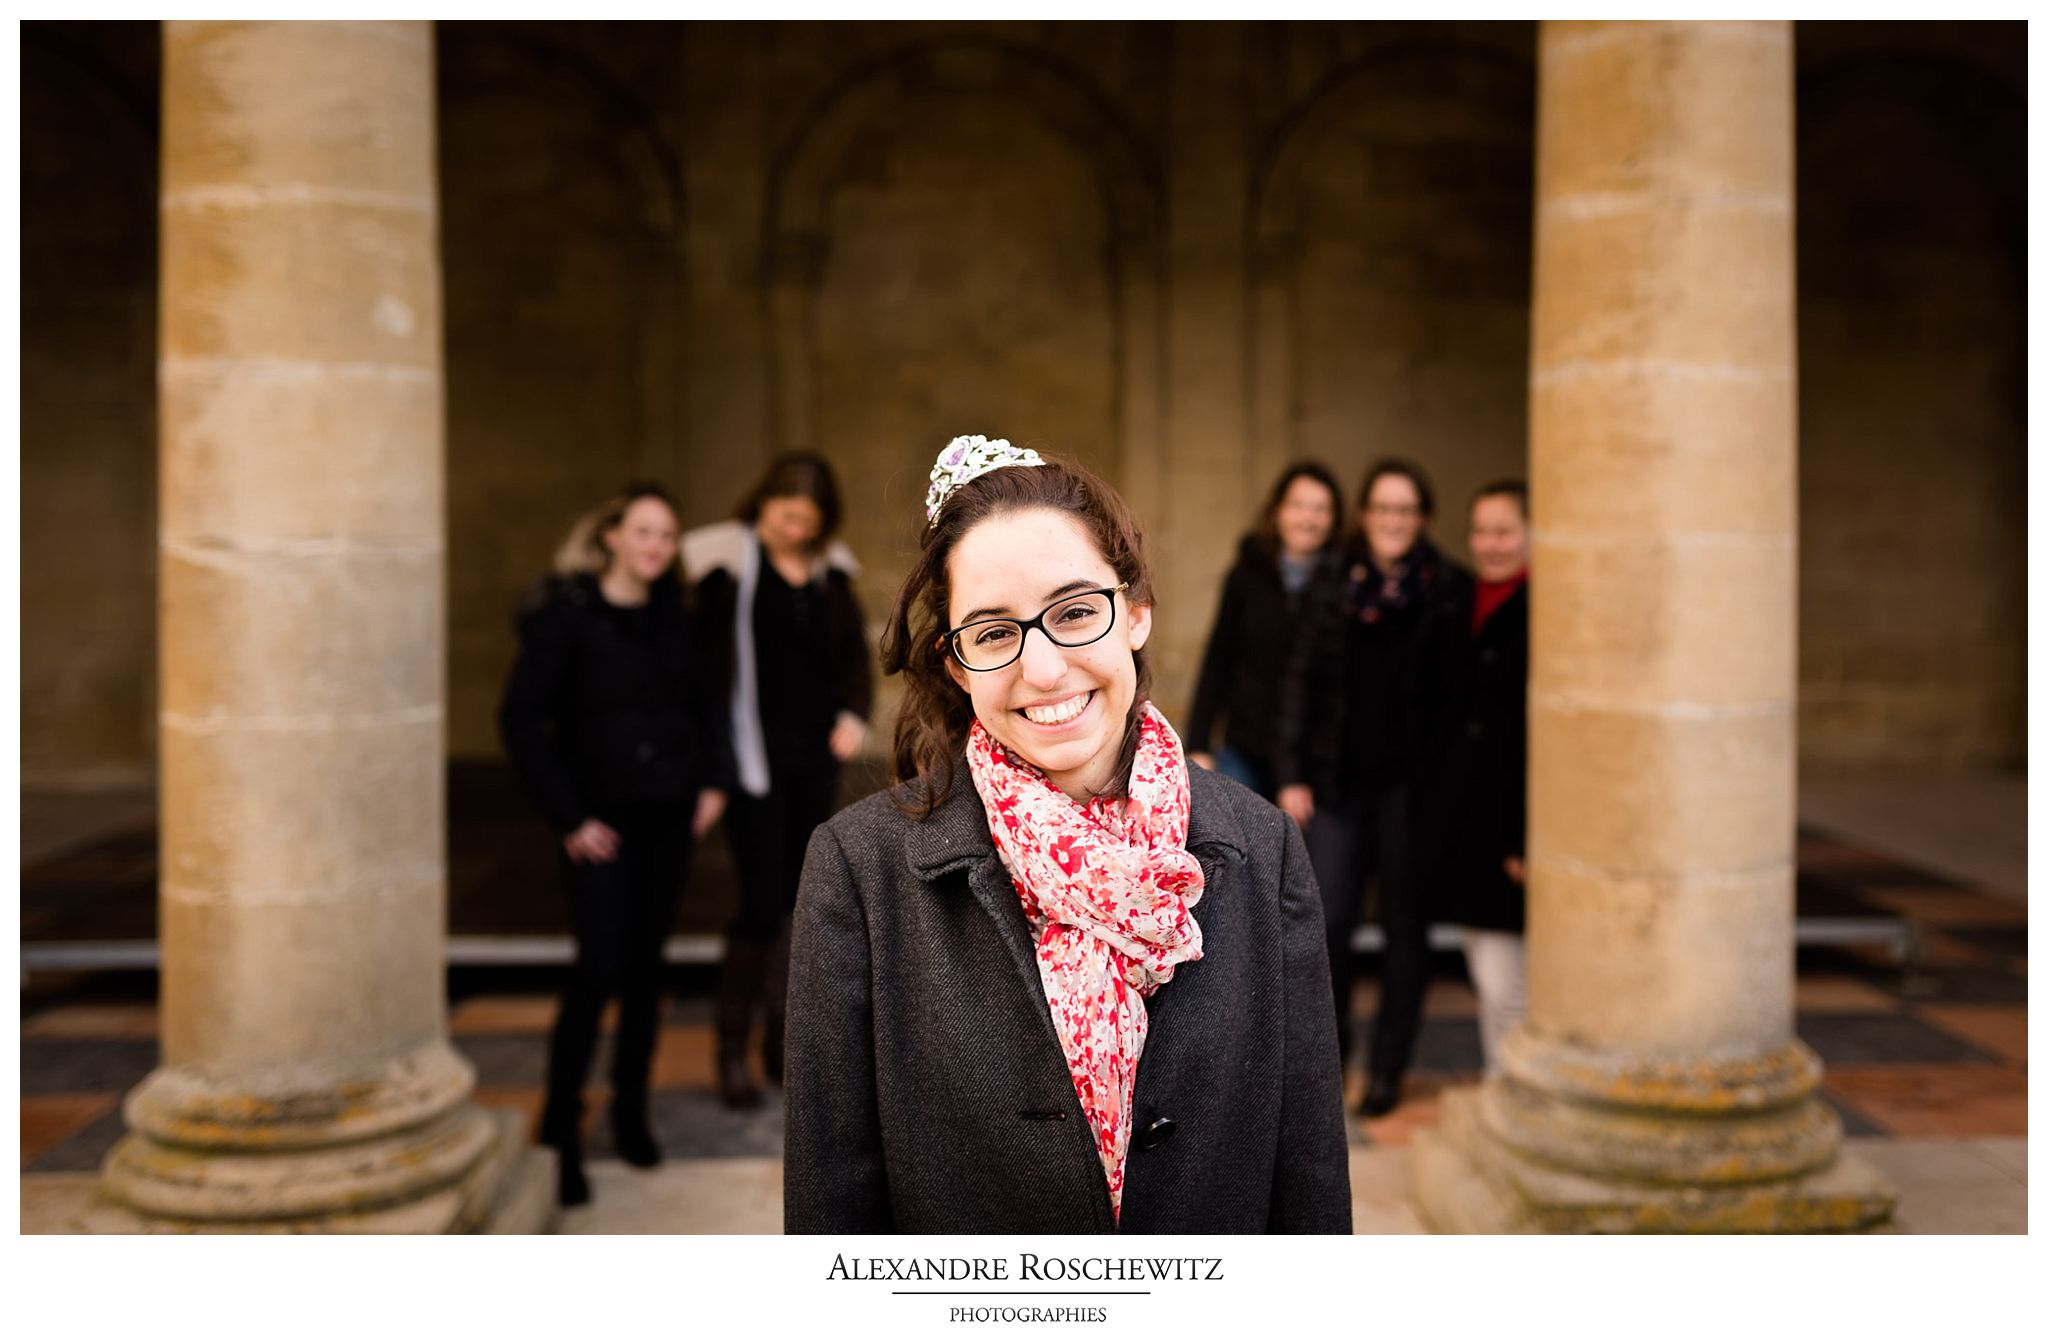 La séance photo EVFJ de Christelle à Bordeaux, avec 5 de ses amies. Alexandre Roschewitz Photographies.